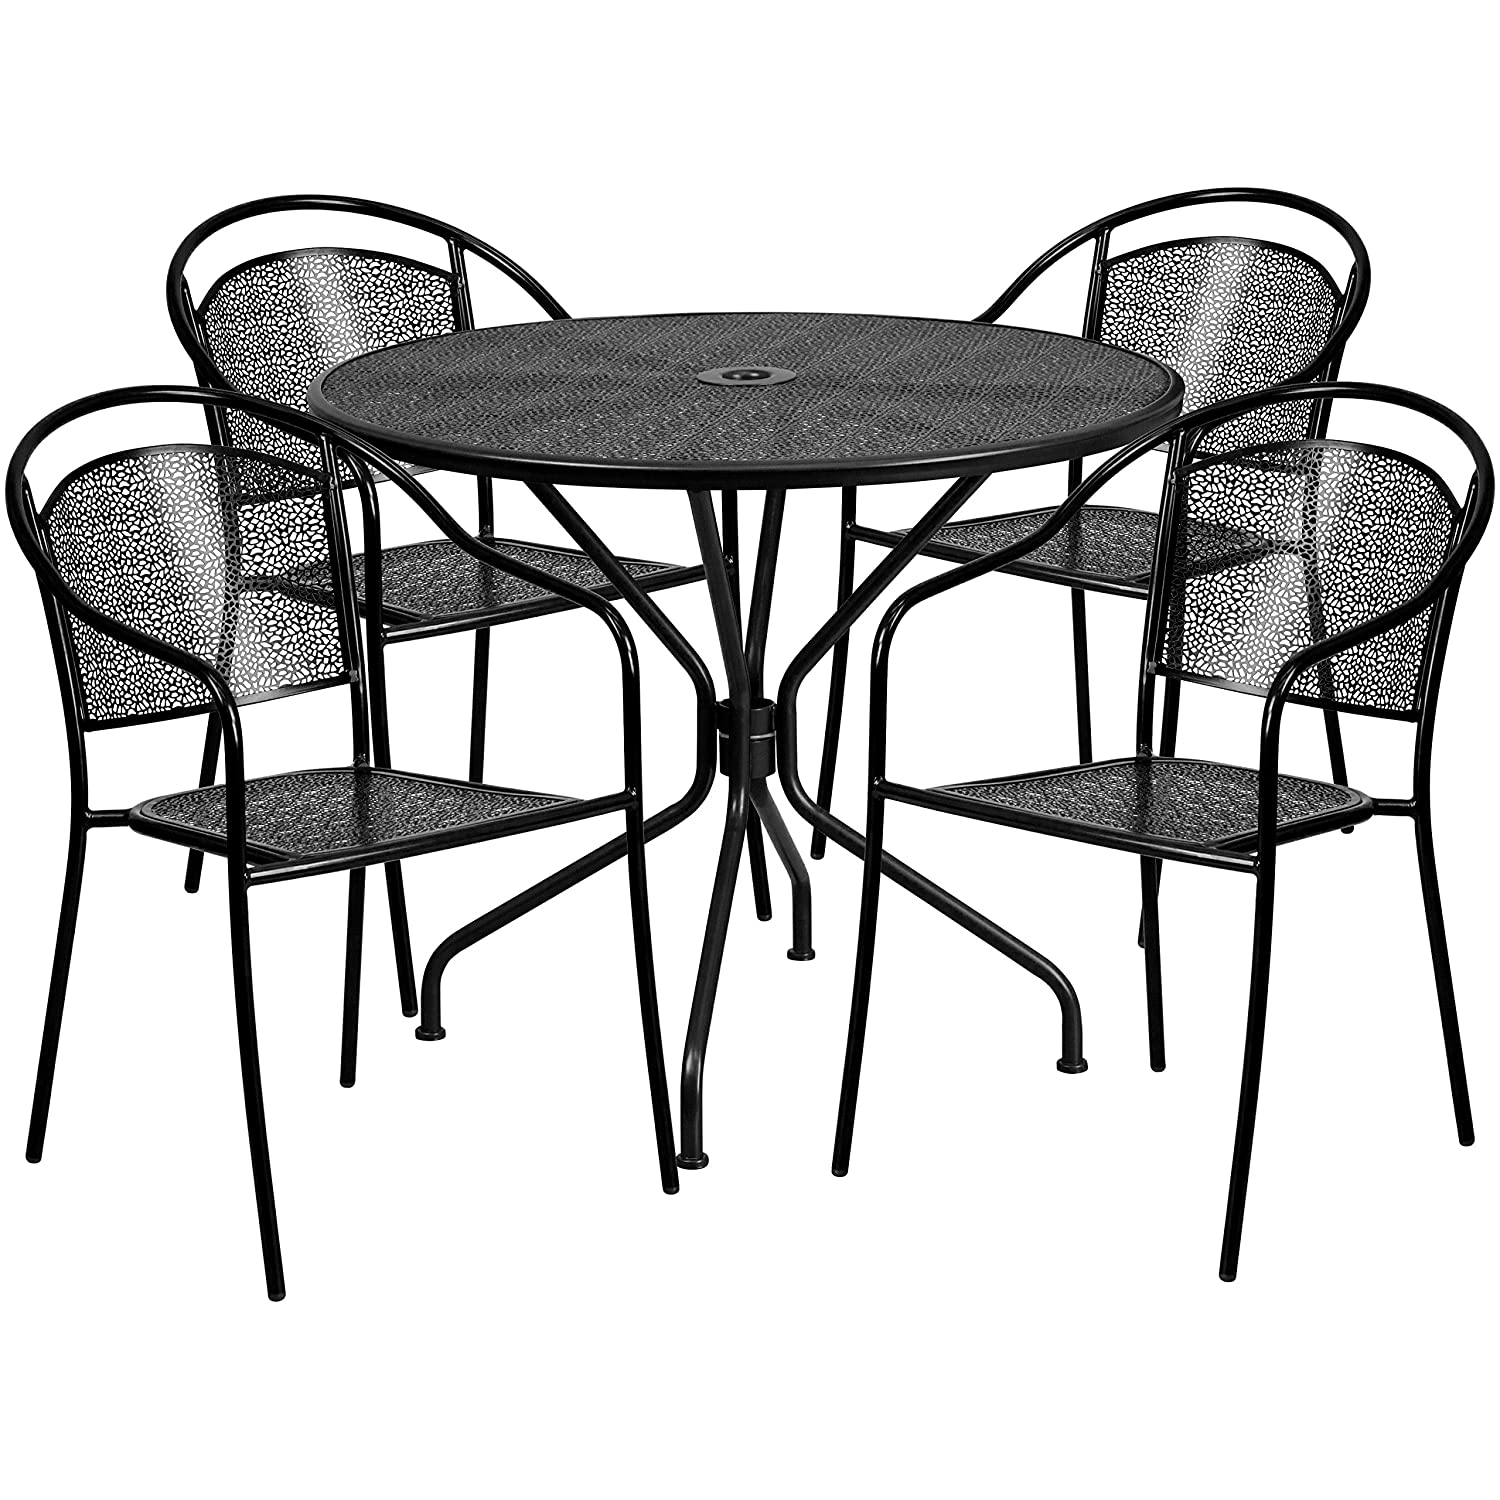 Flash Furniture 35.25 Round Black Indoor-Outdoor Steel Patio Table Set with 4 Round Back Chairs